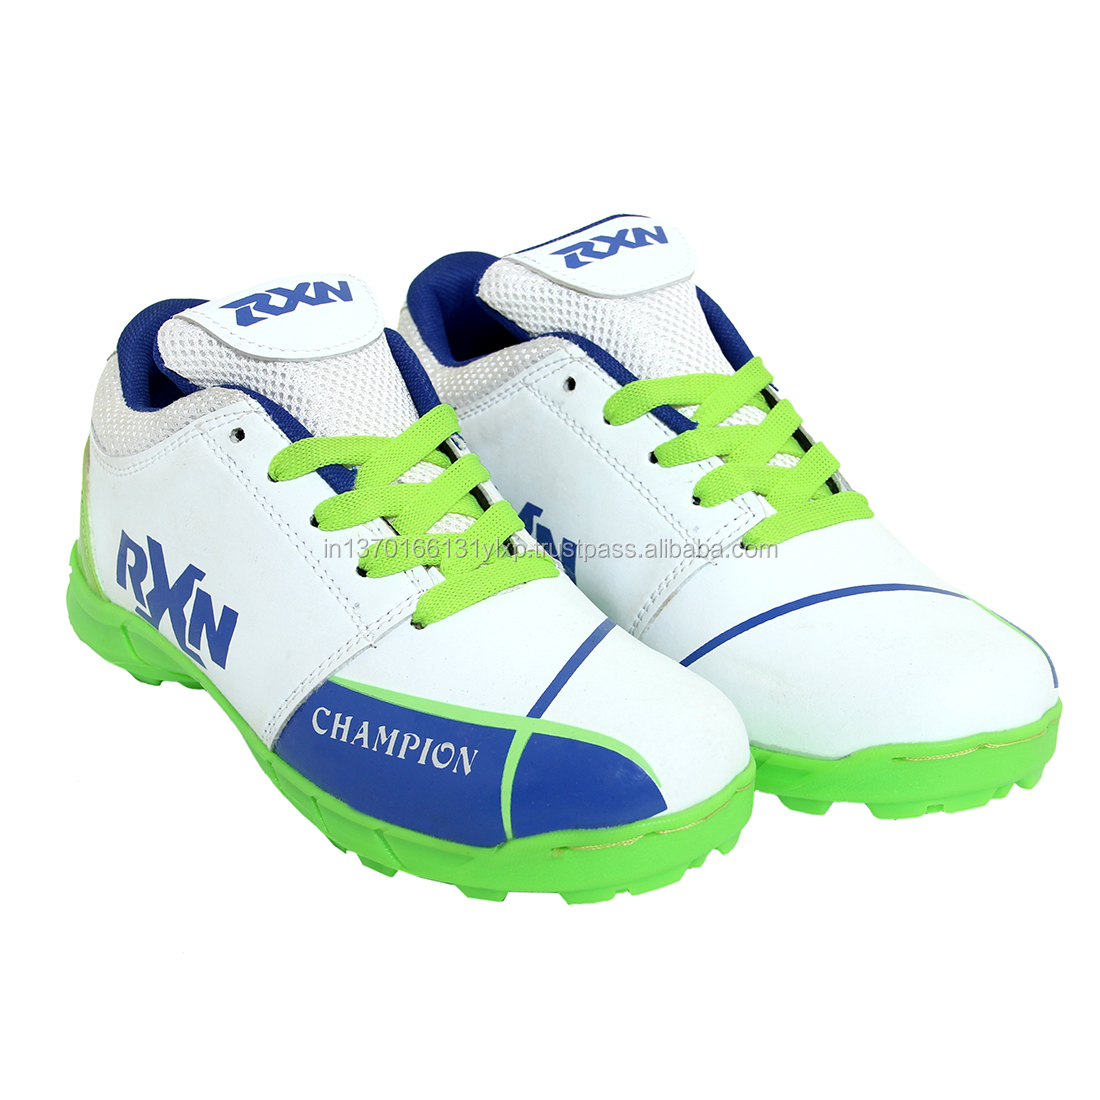 Cricket Sports Shoes Made In India With Latest Technique  Imported Material Used In Manufacturing Of Sports Shoes